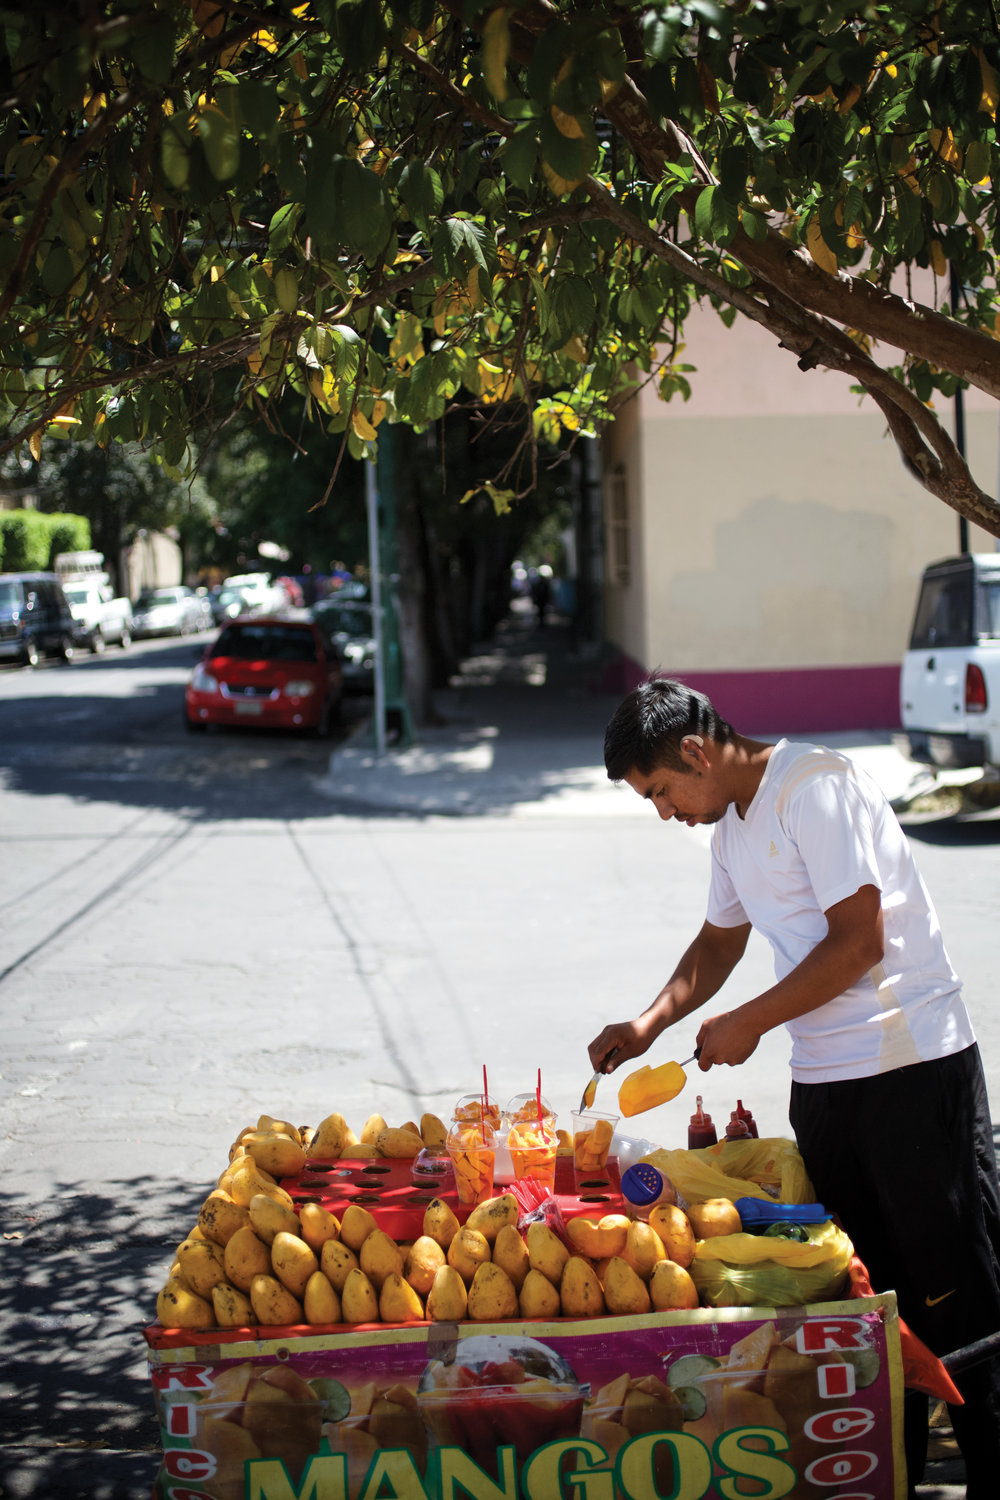 Copy of Mexico City street vendor selling mangos